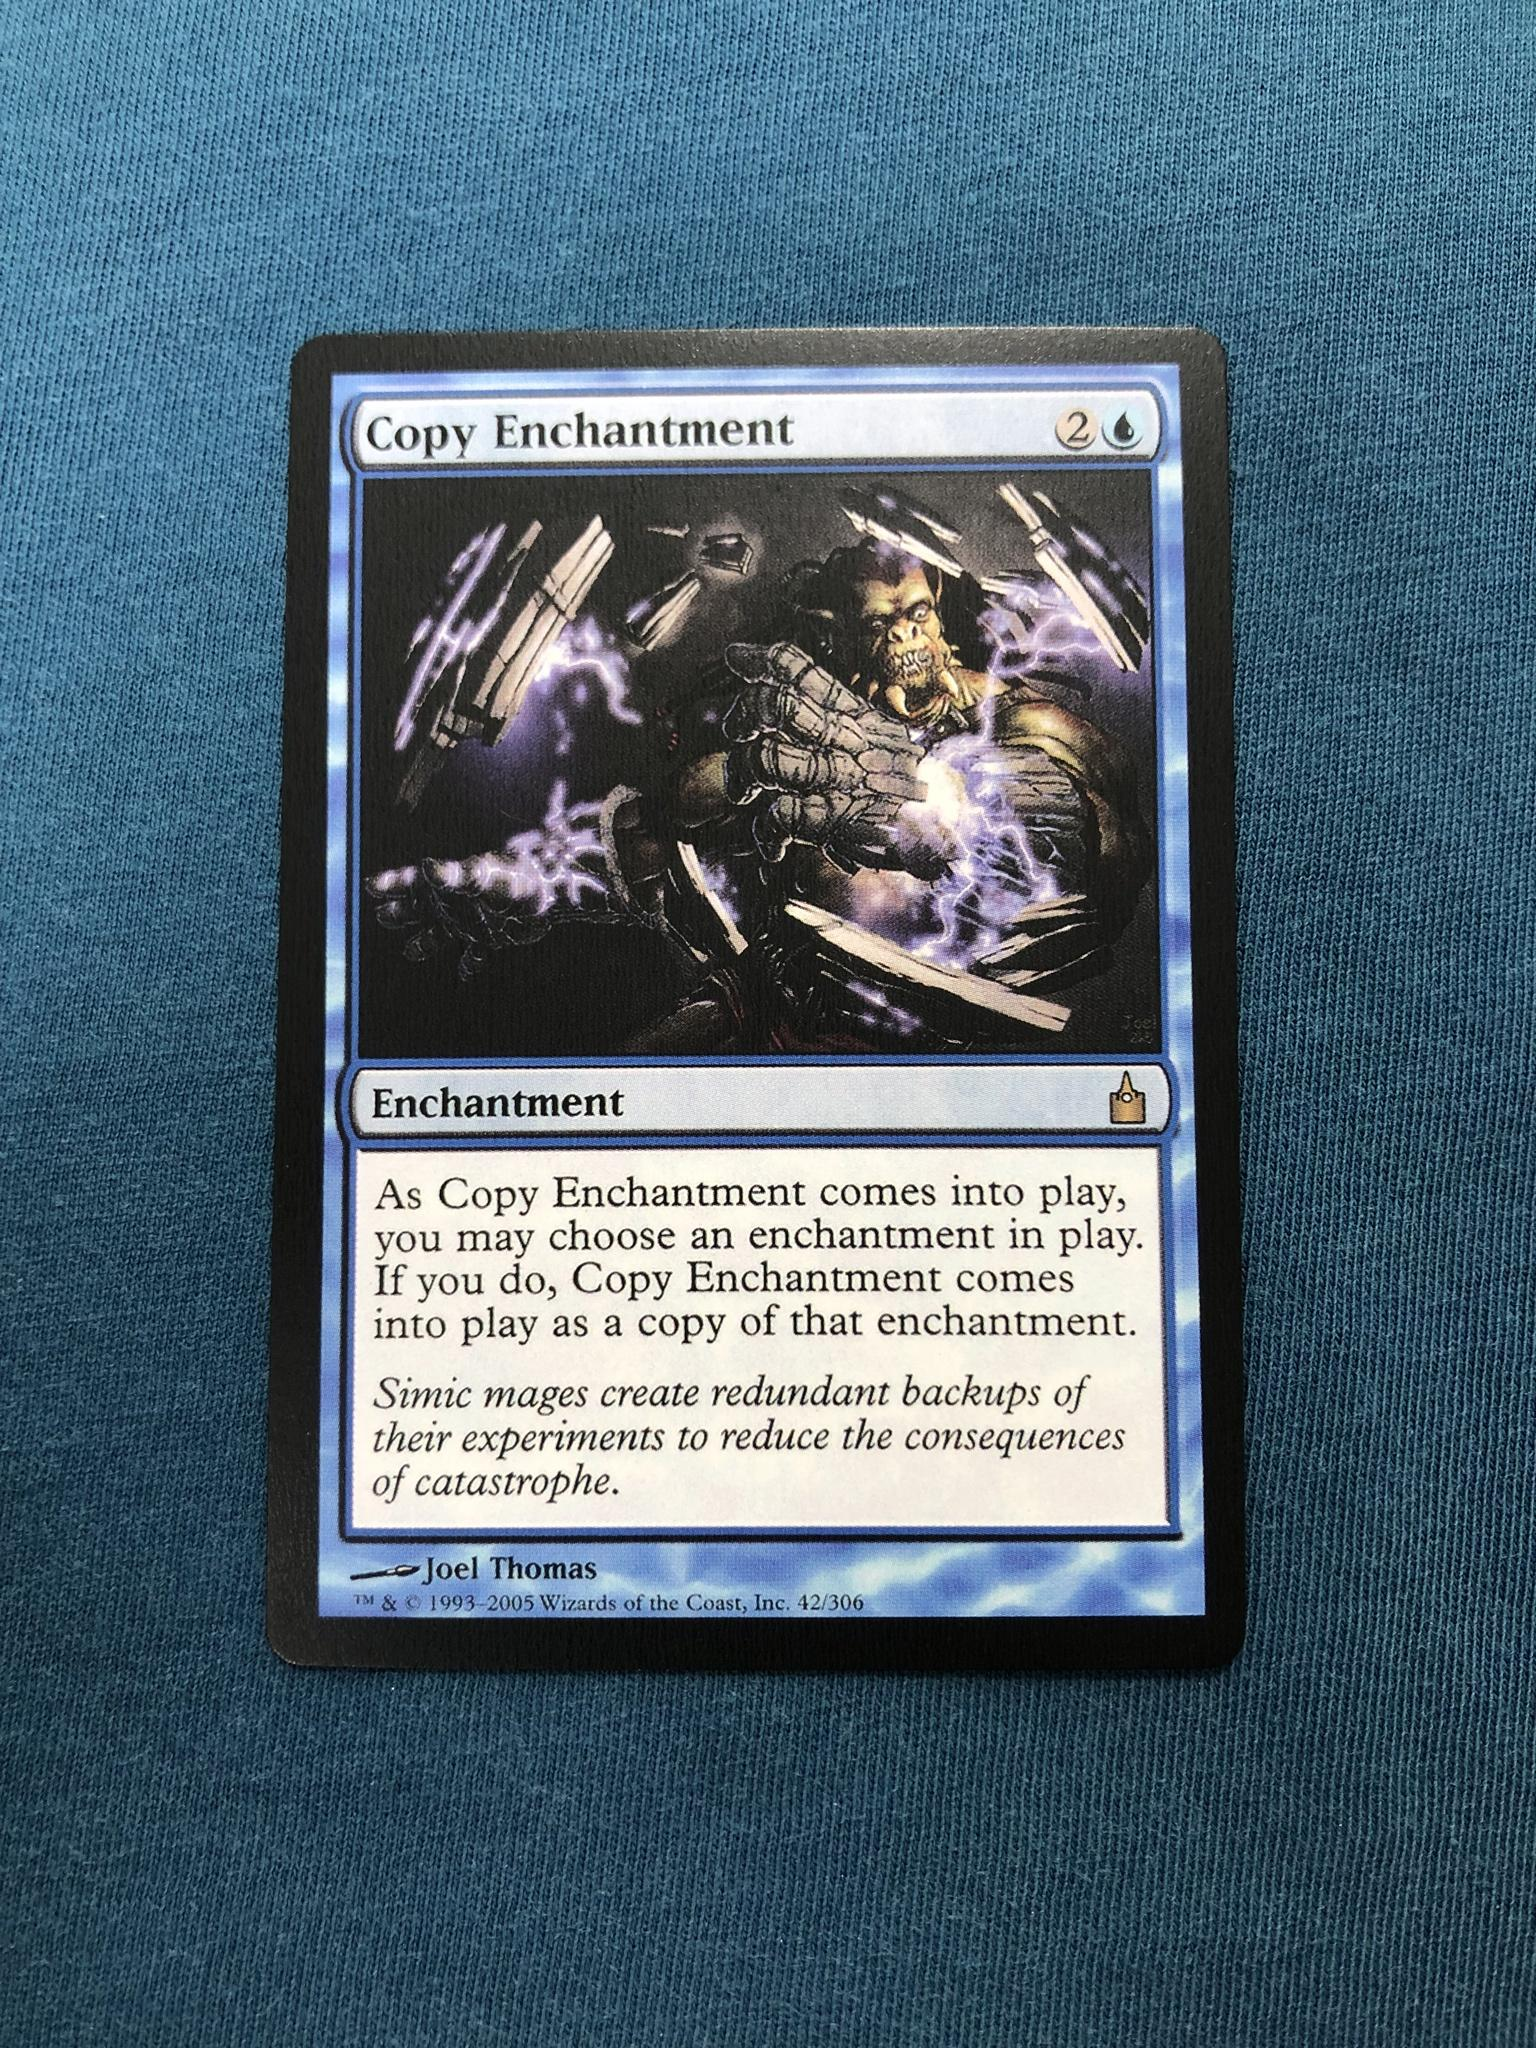 Copy Enchantment Ravnica: City of Guilds (RAV) proxy mtg proxies proxy magic the gathering proxies cards FNM GP playable quality